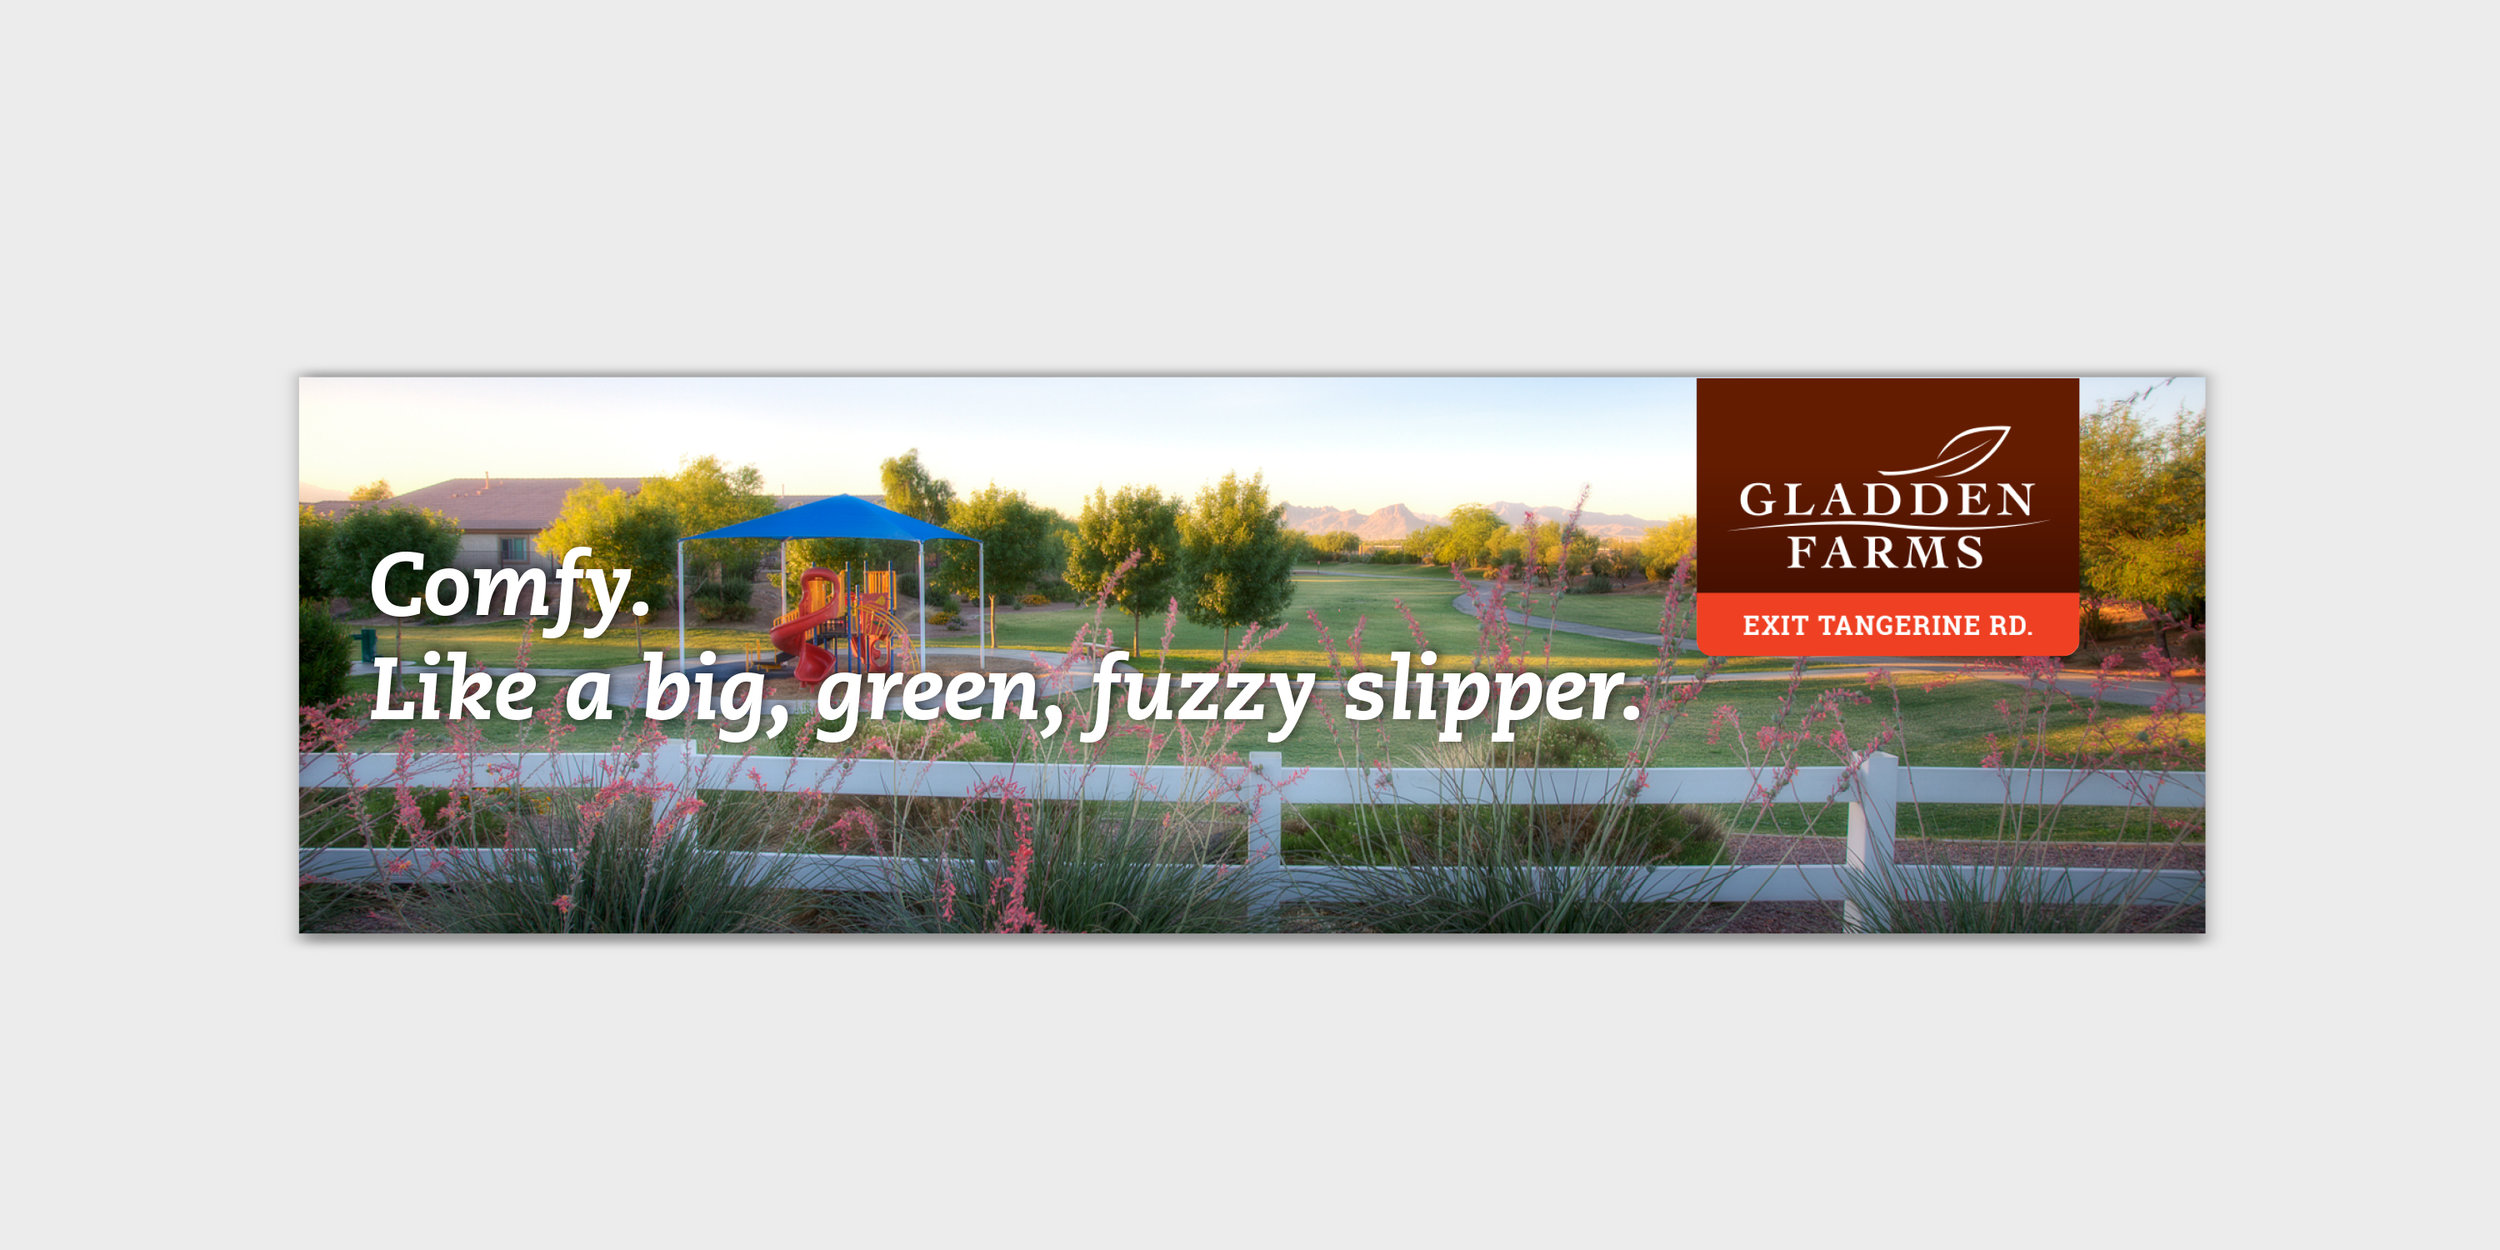 Web_Samples_GladdenFarms_3.jpg